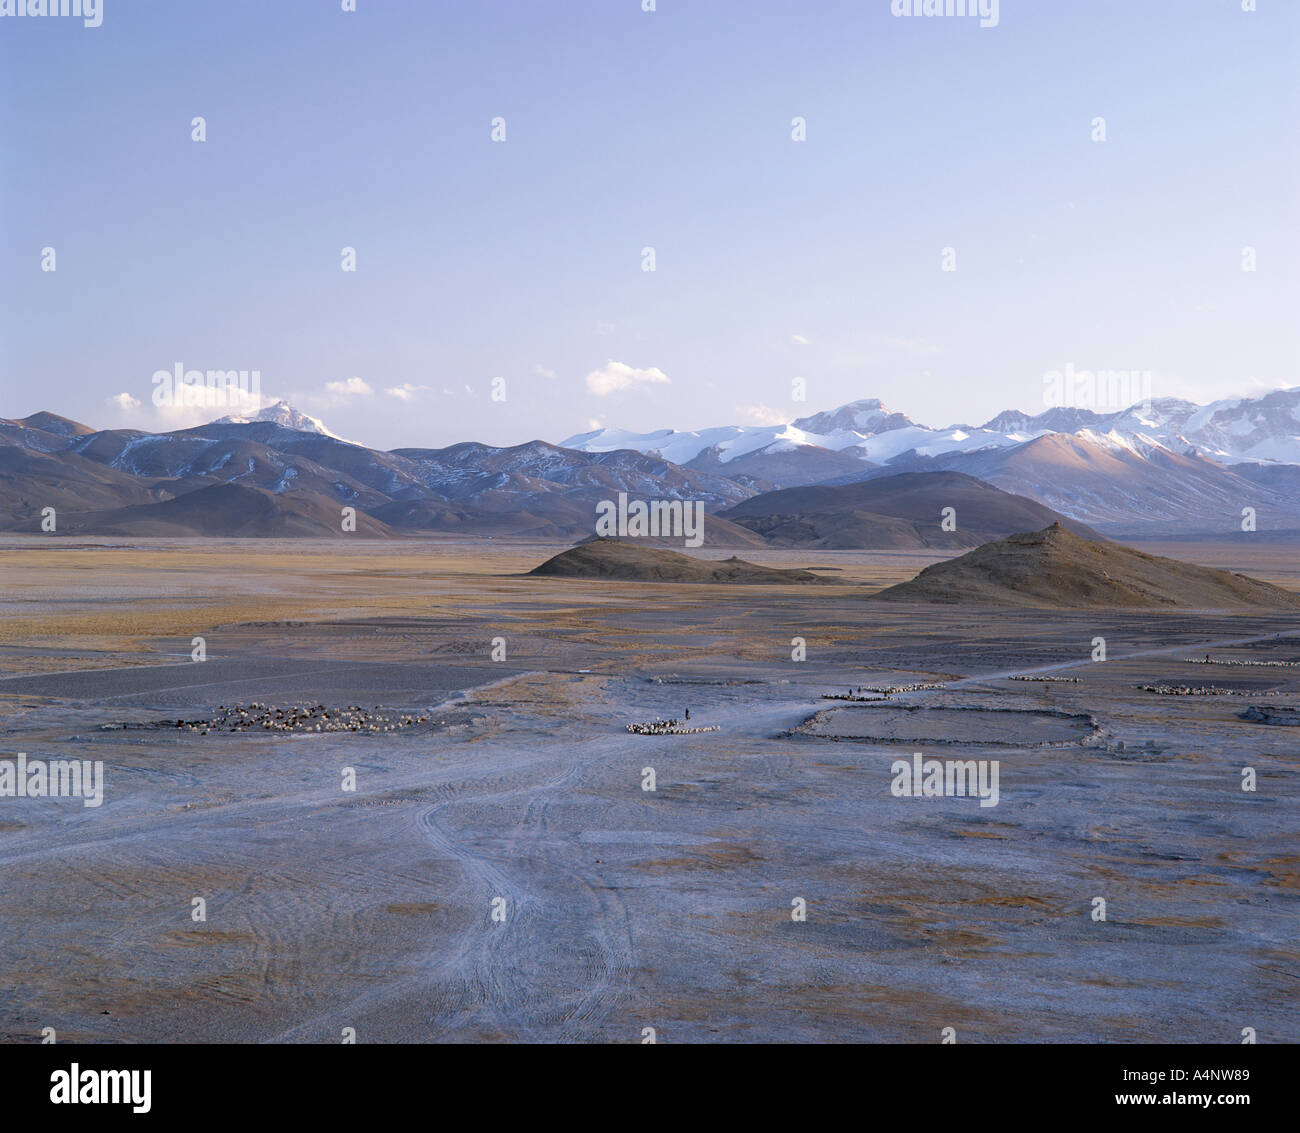 Mount Everest and Himalaya mountains U Tsang region Tibet China Asia - Stock Image